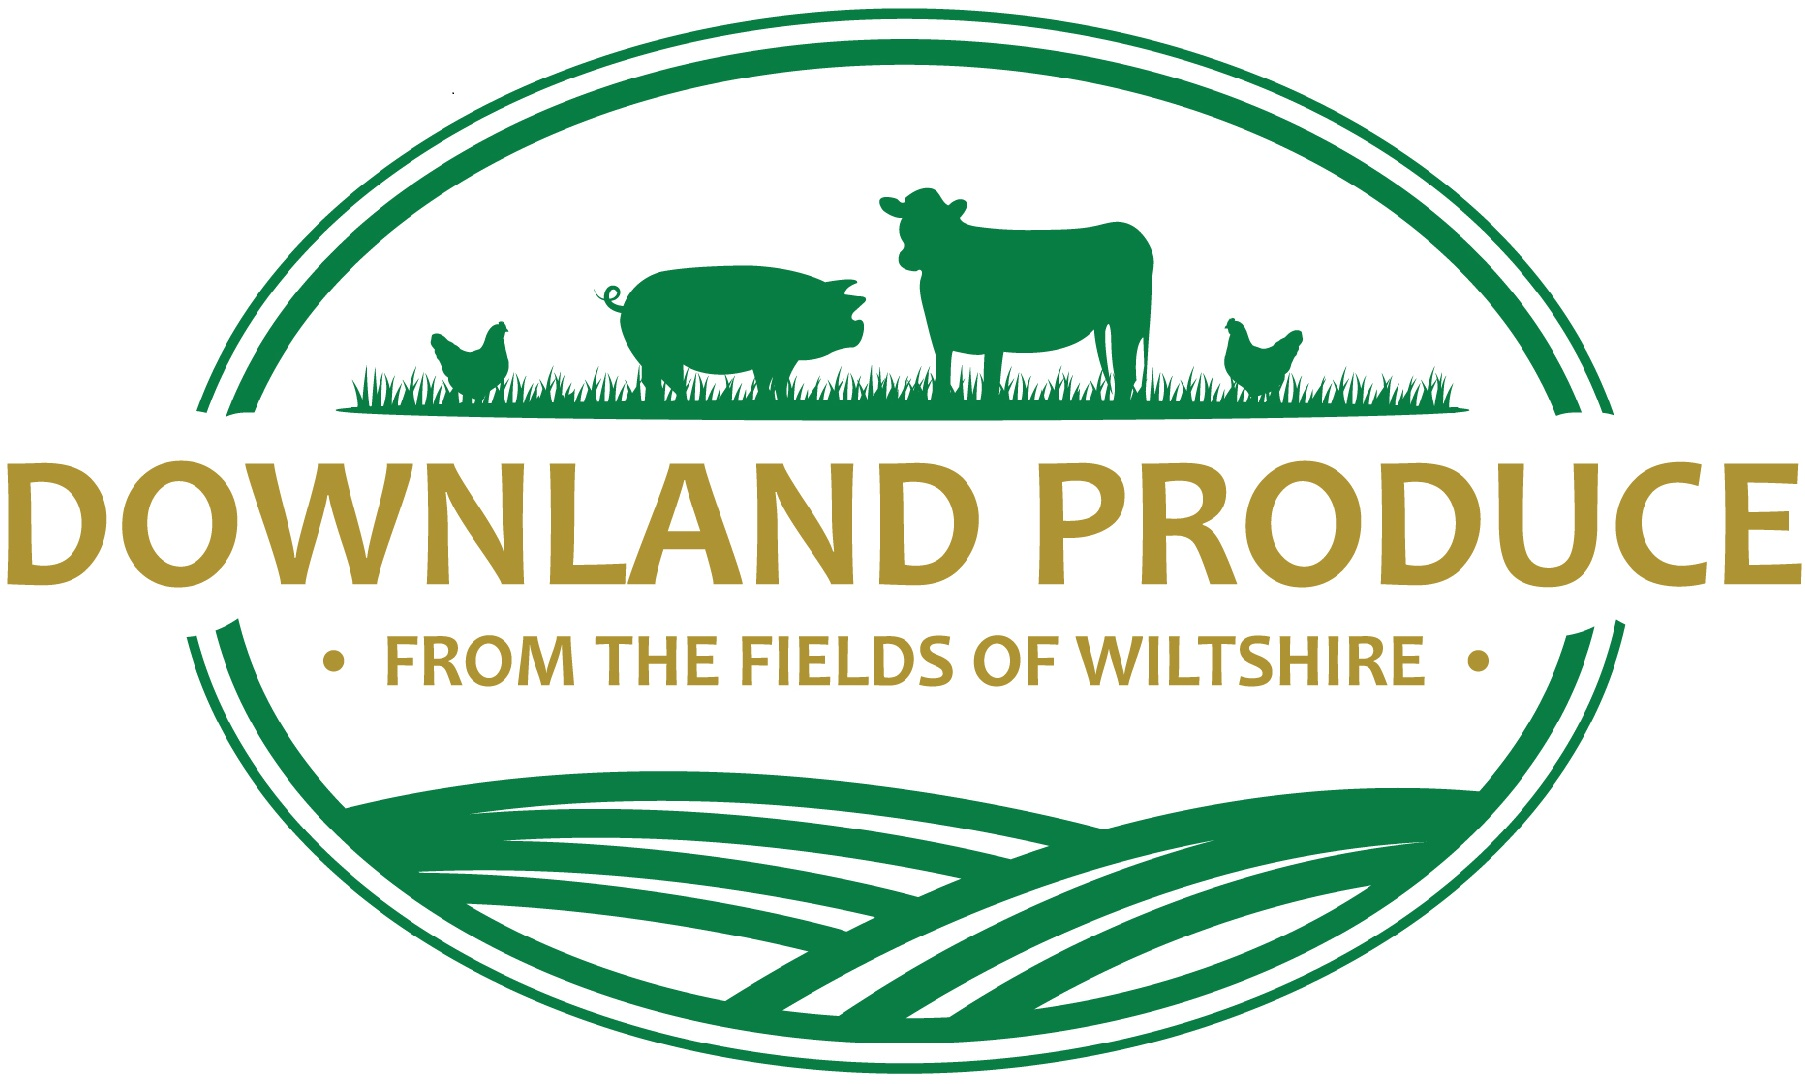 Downland Produce